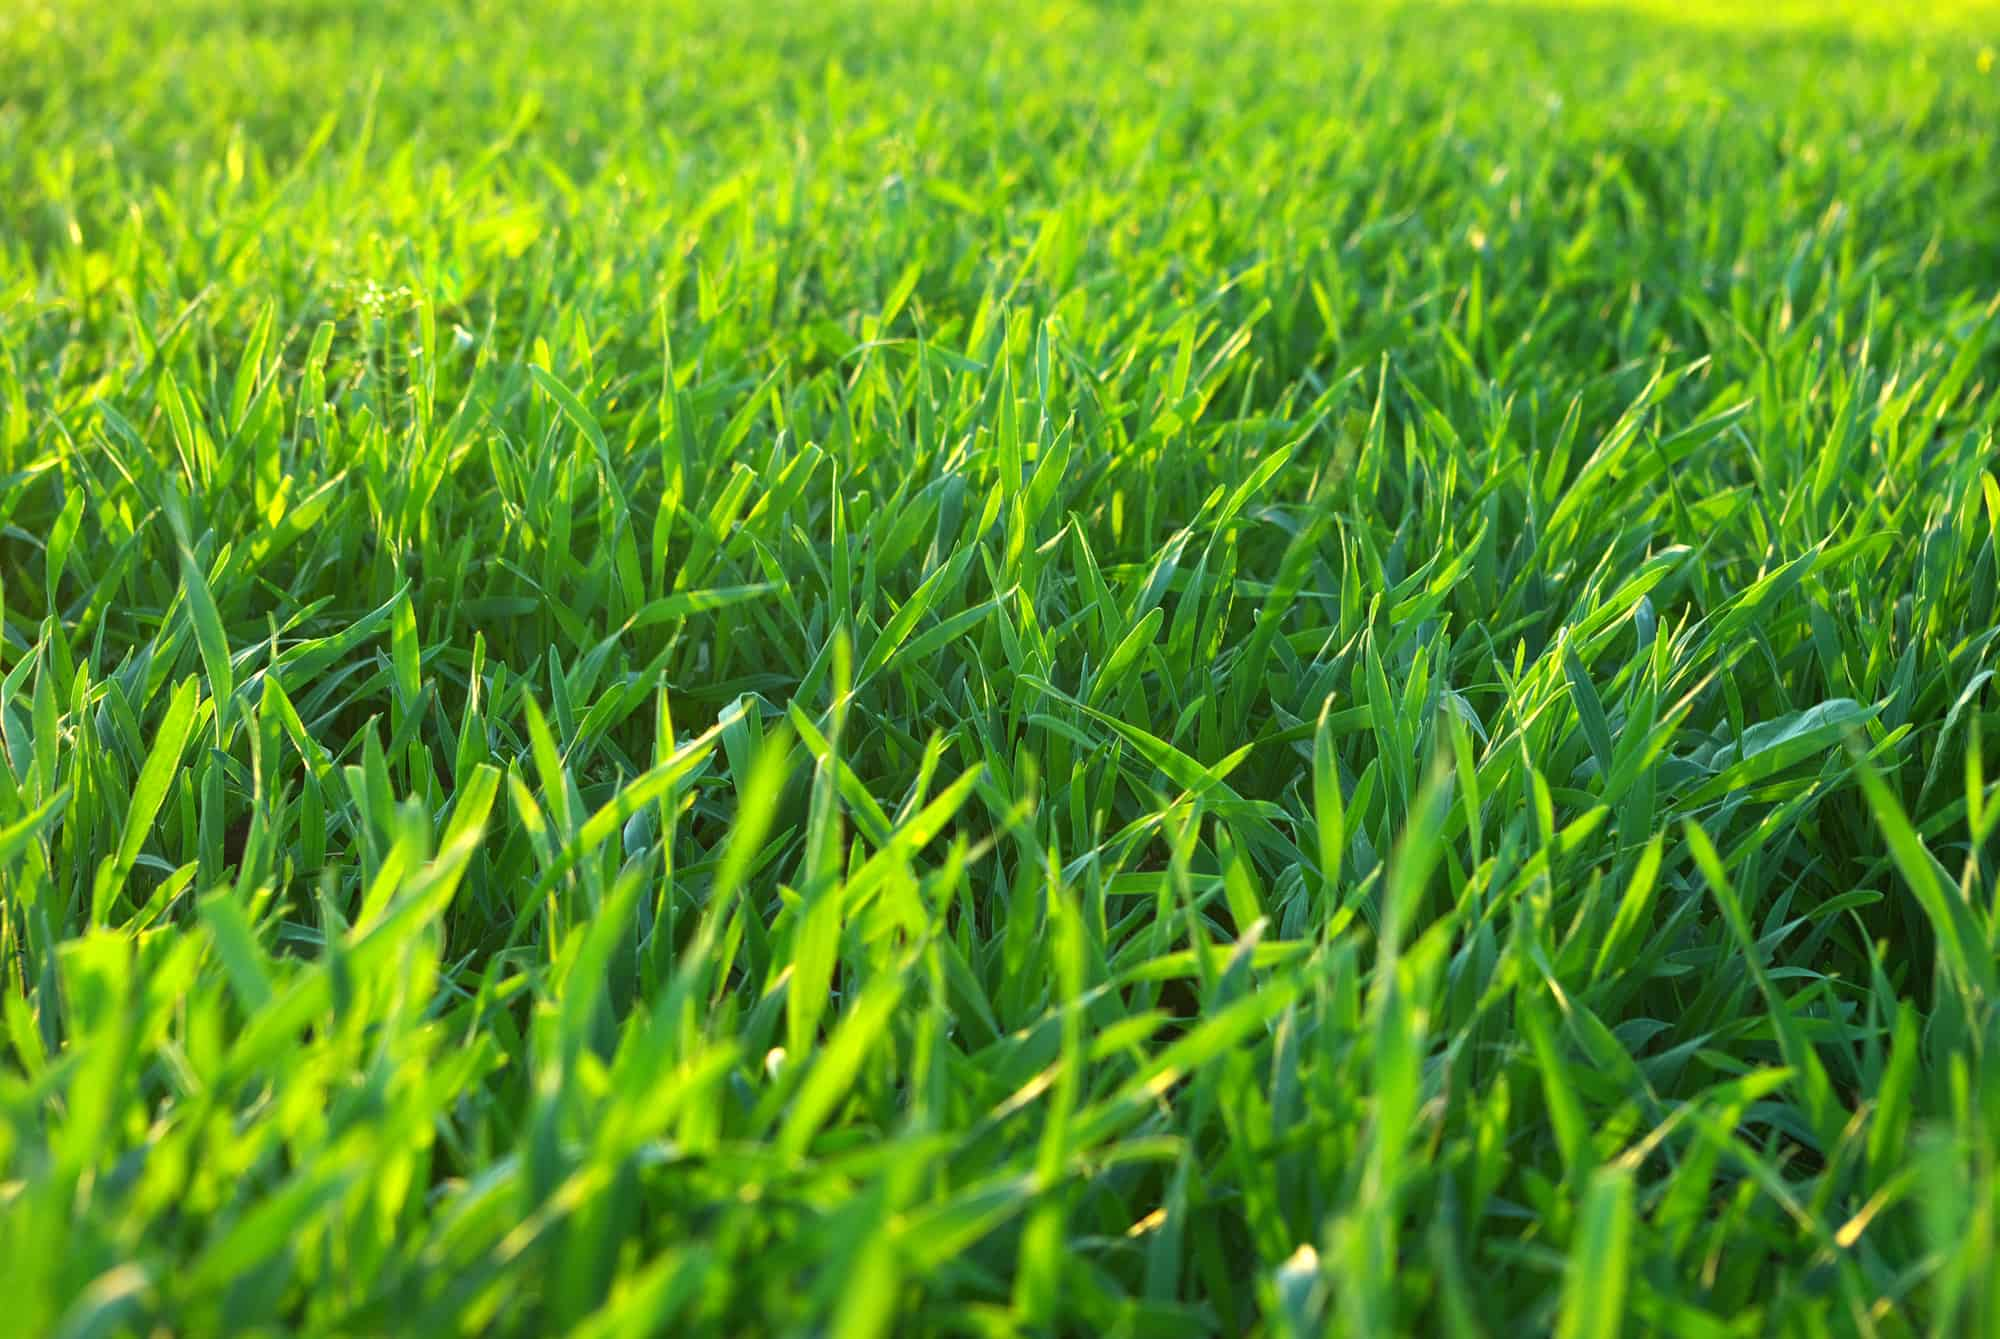 What Is Liquid Lawn Aeration? And Is It Effective? 1